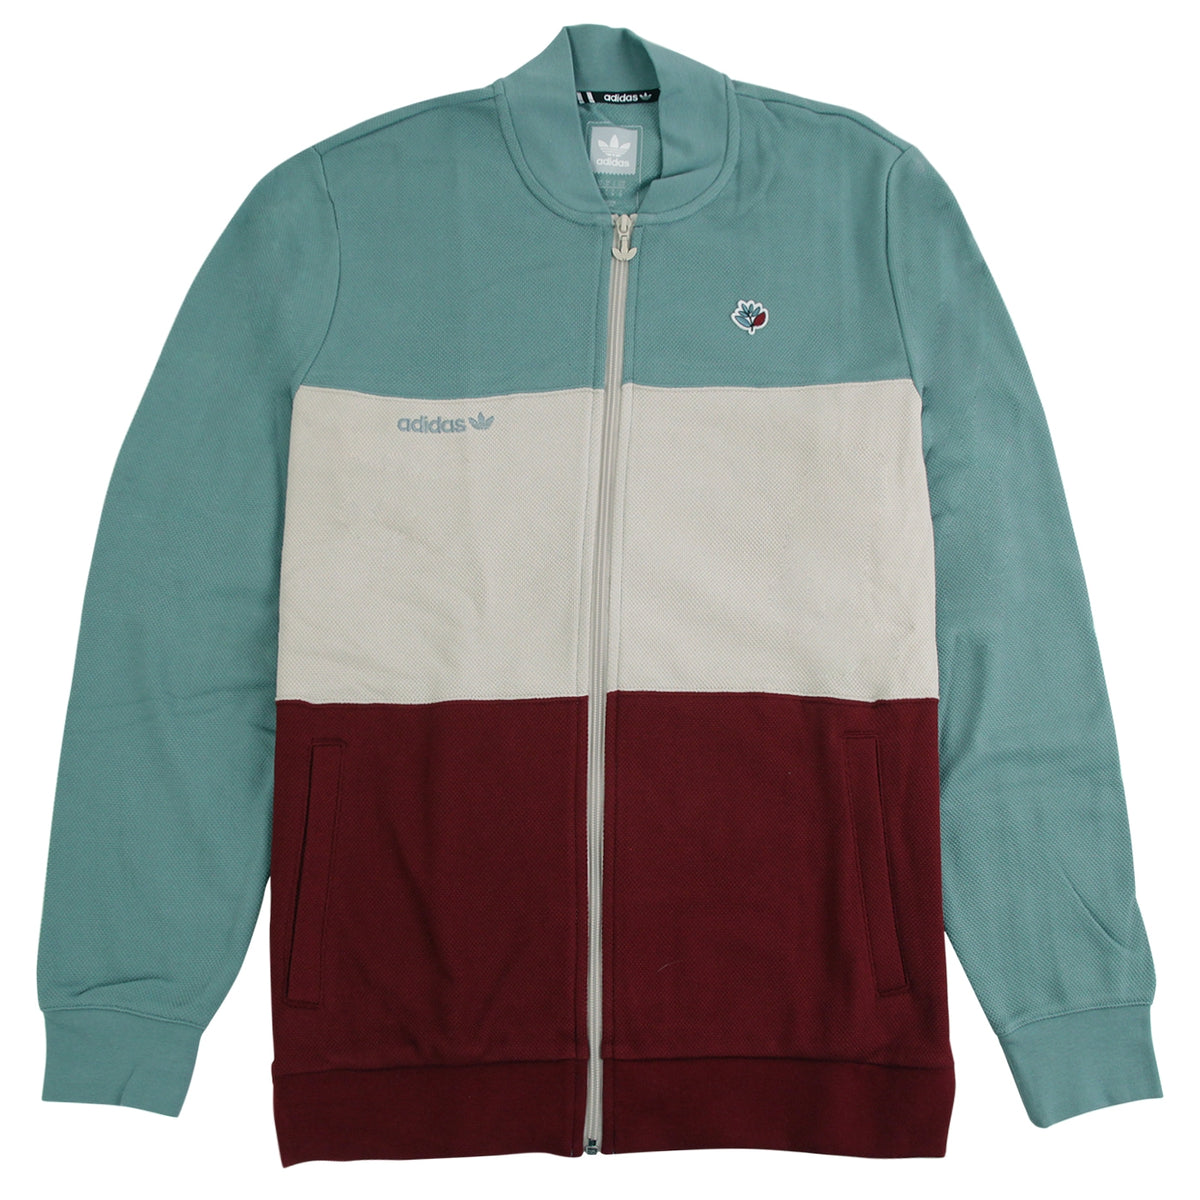 39e44b283aa Adidas x Magenta Skateboards Jacket in Vapour Steel   Clear Brown   Collegiate  Burgundy by Adidas Skateboarding